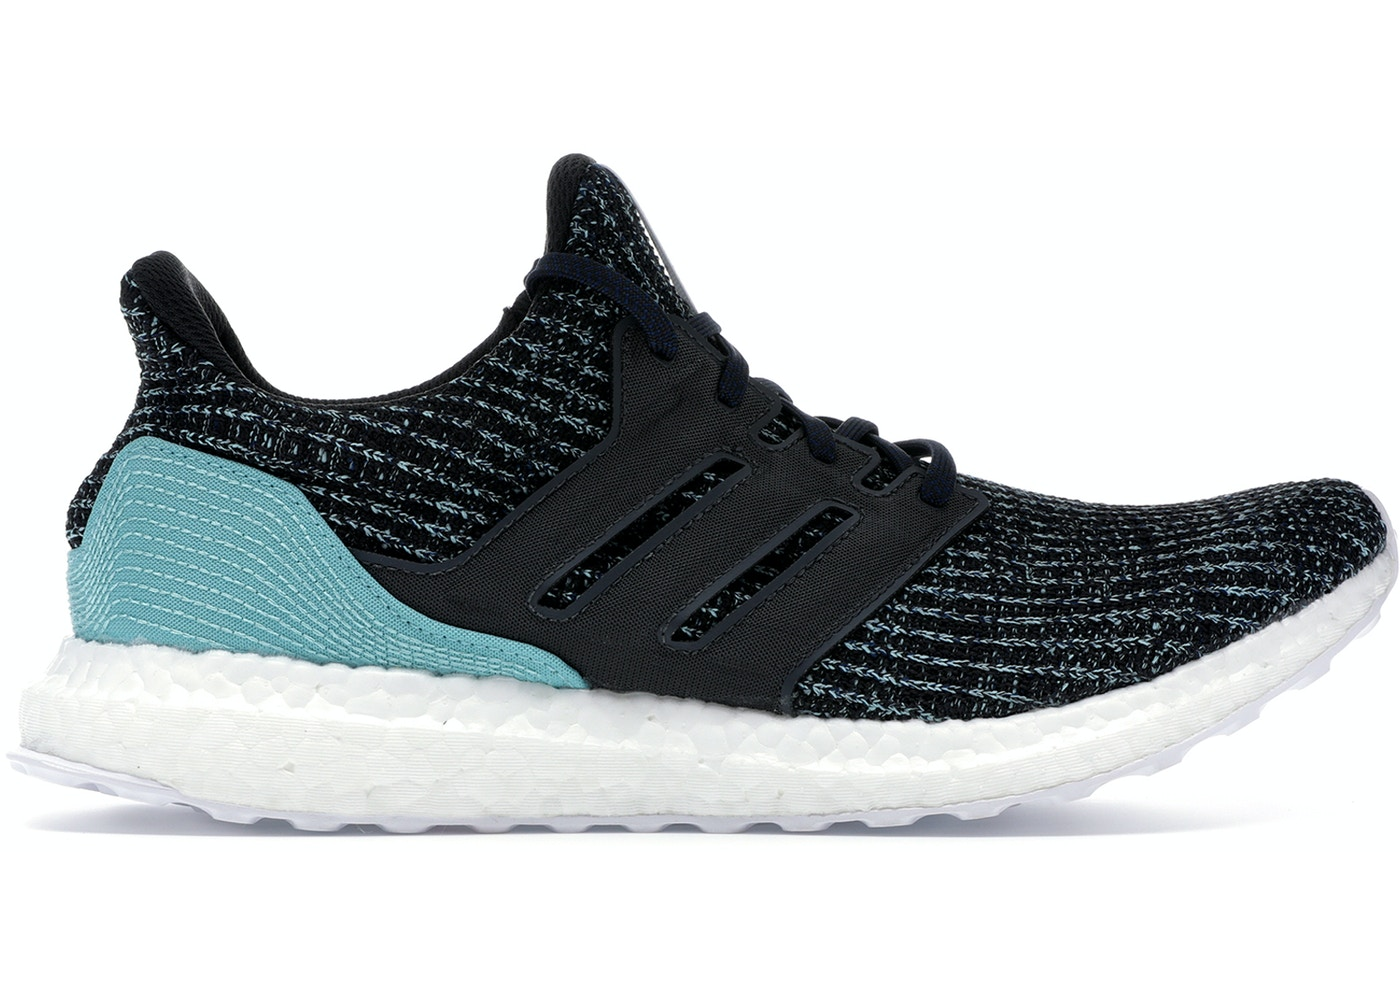 online retailer f3ec4 22005 adidas Ultra Boost 4.0 Parley Carbon